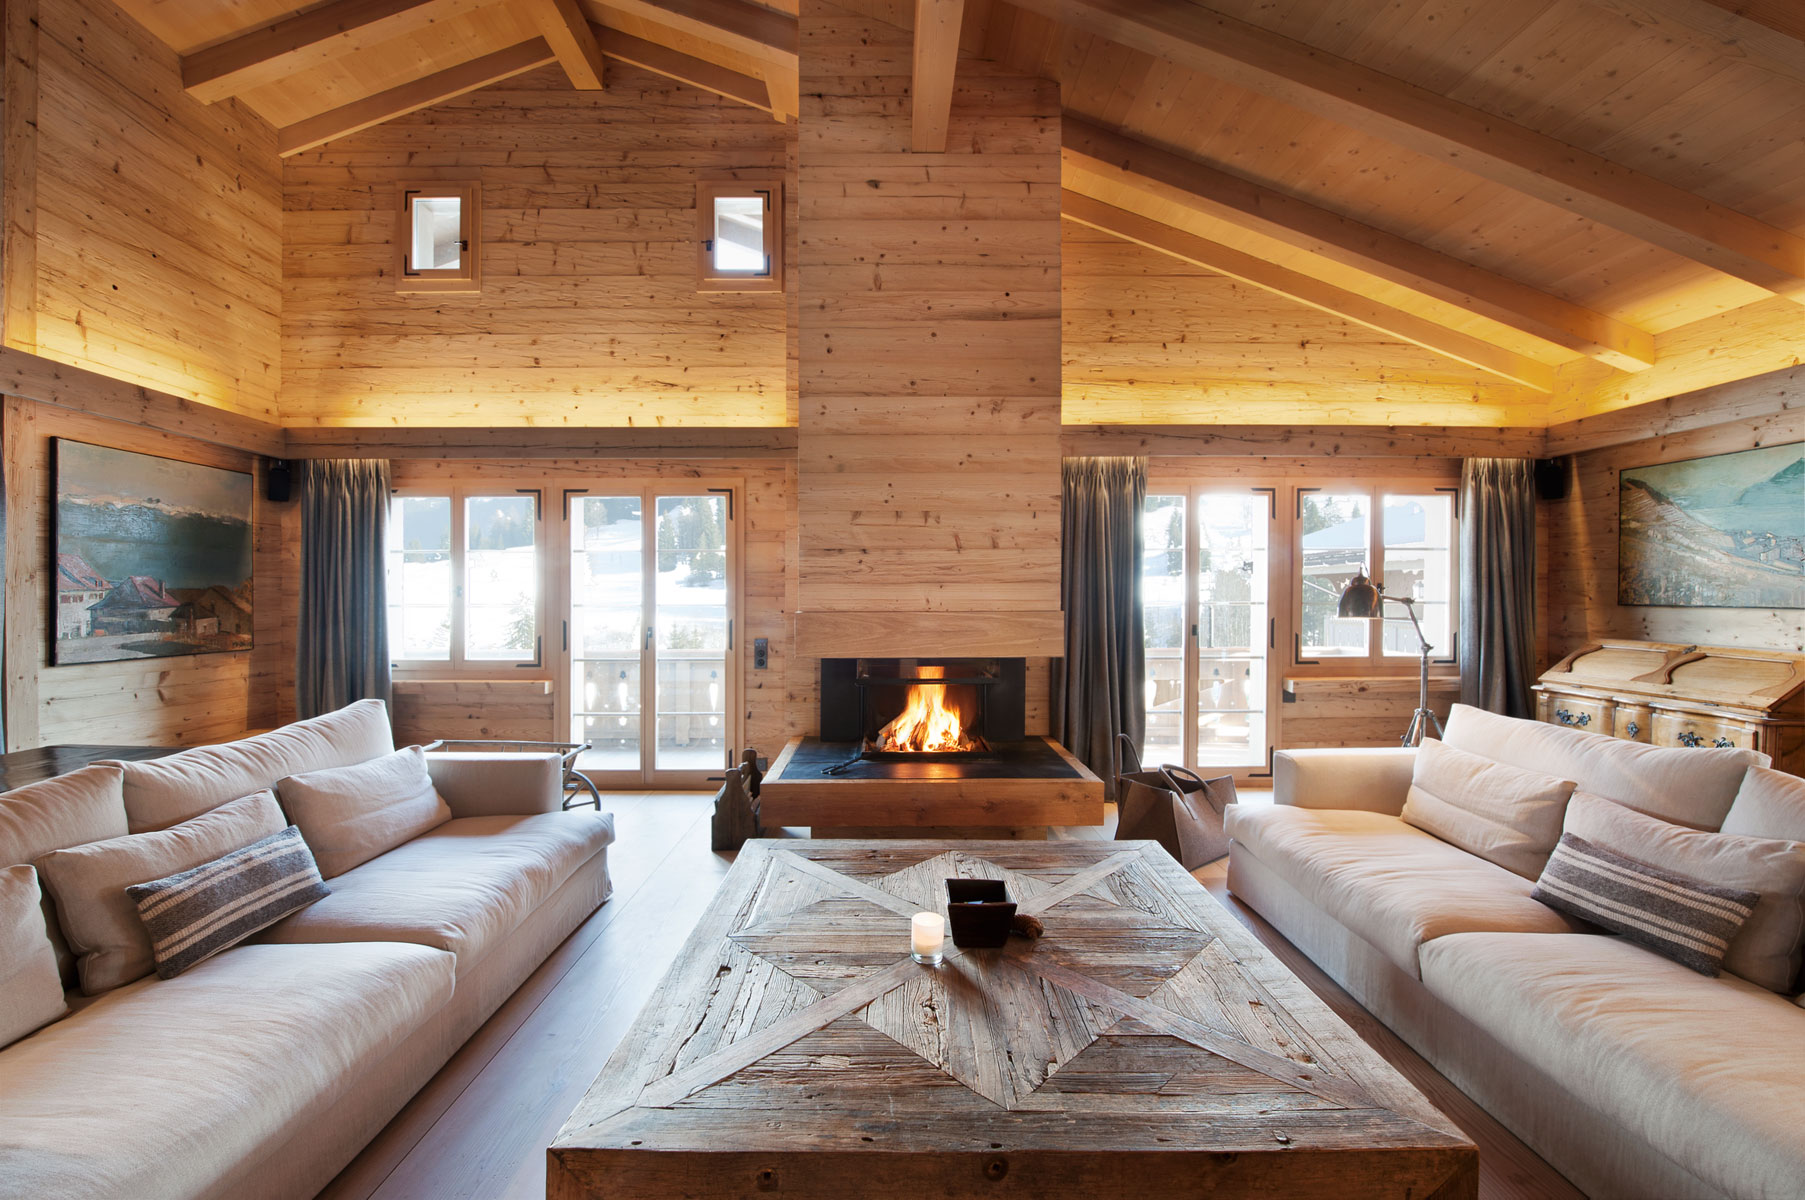 Chalet gstaad switzerland for Interieur chalet bois